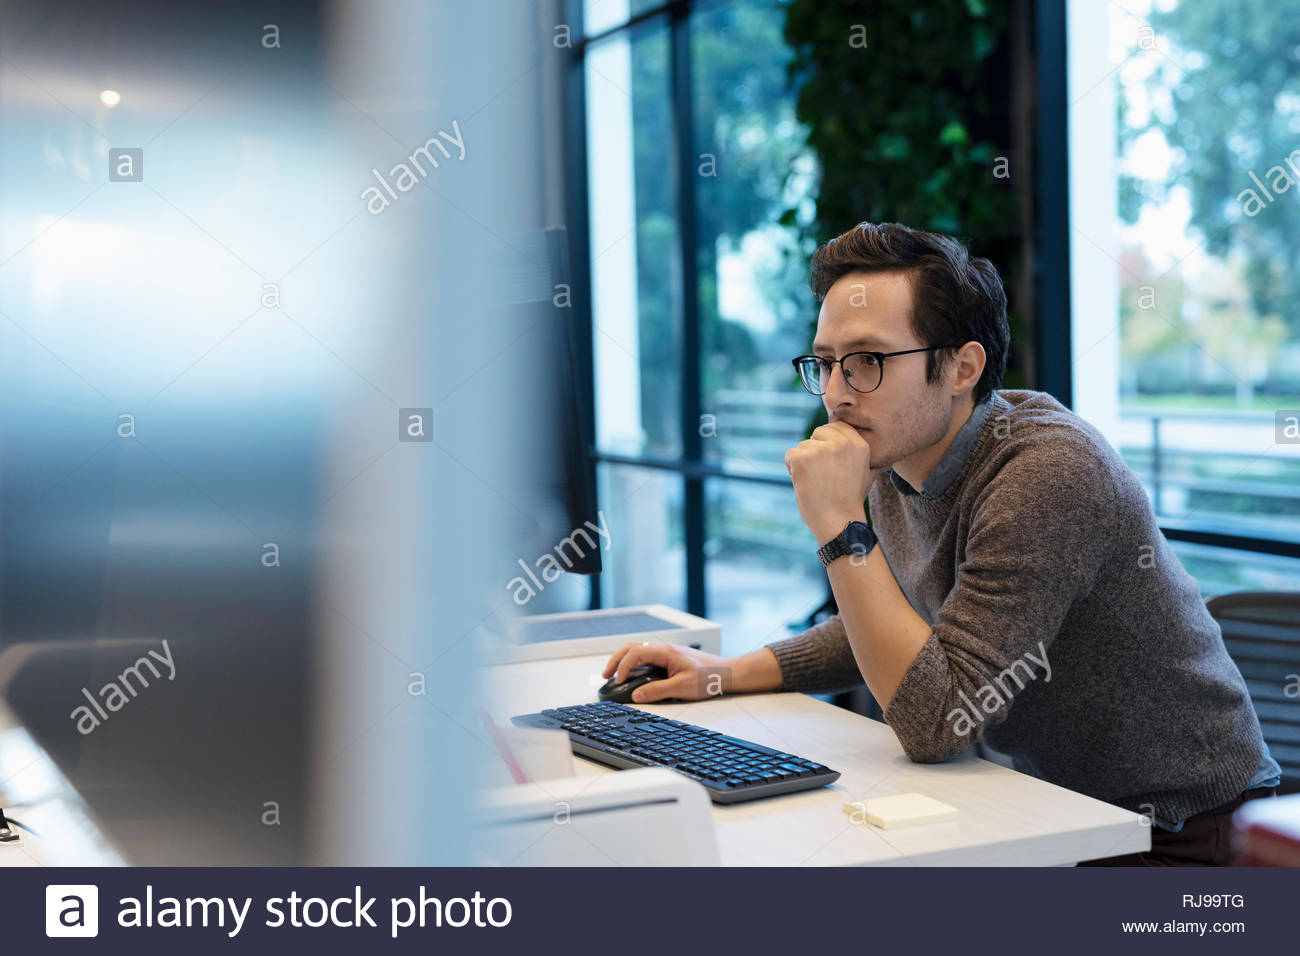 Dedicated businessman working at computer in office - Stock Image